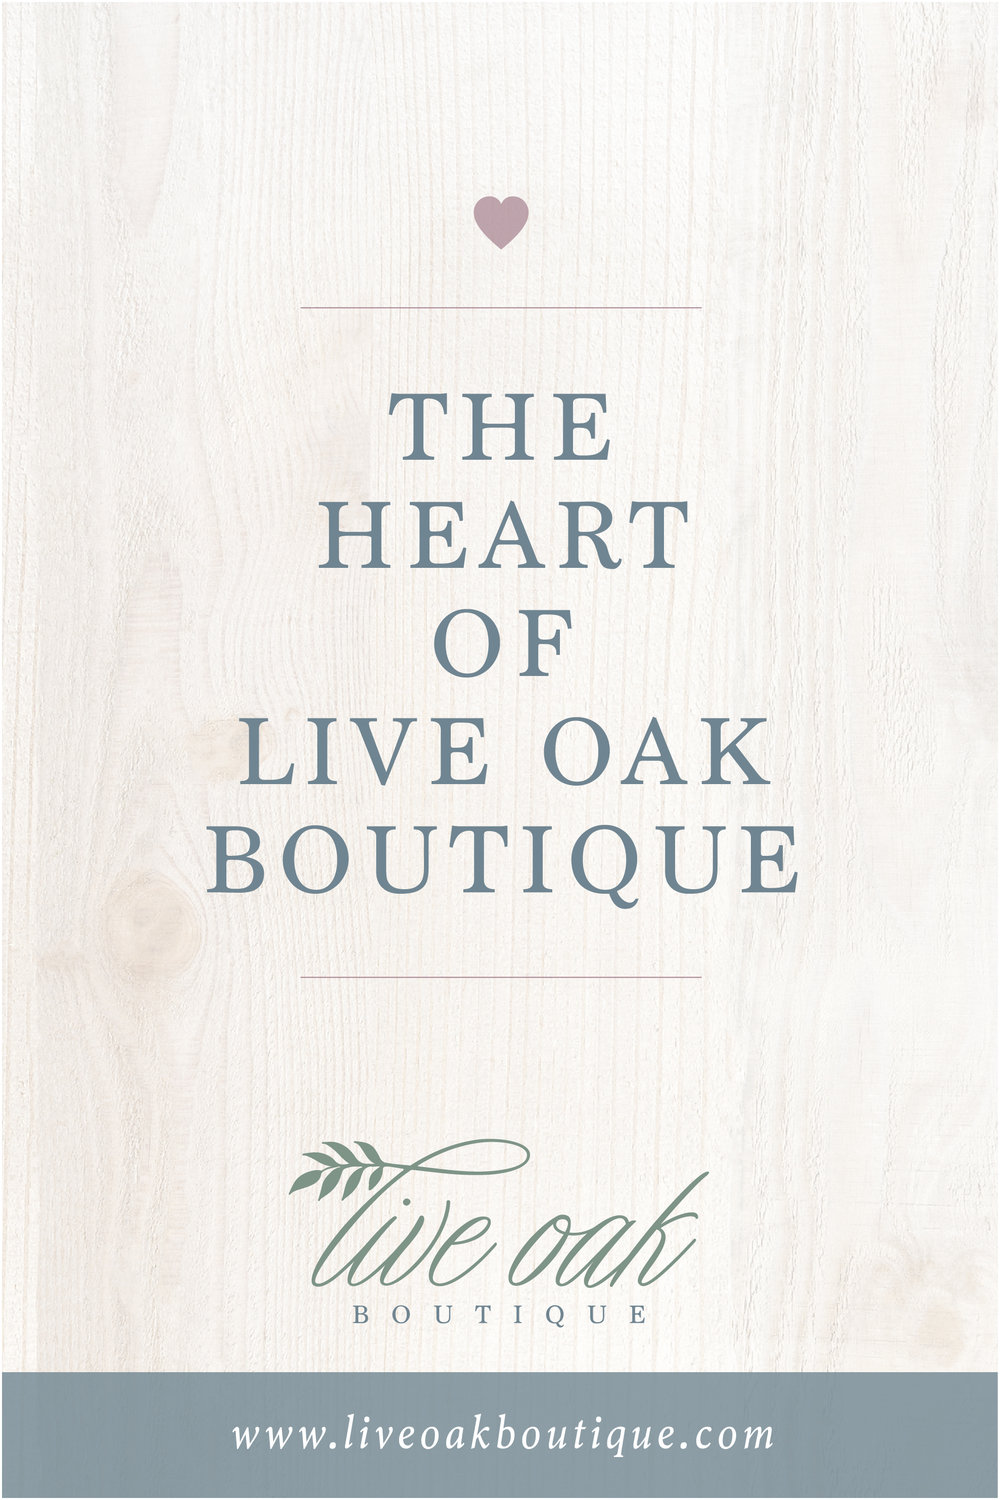 Live Oak Boutique Blog Post: The Heart of Live Oak Boutique